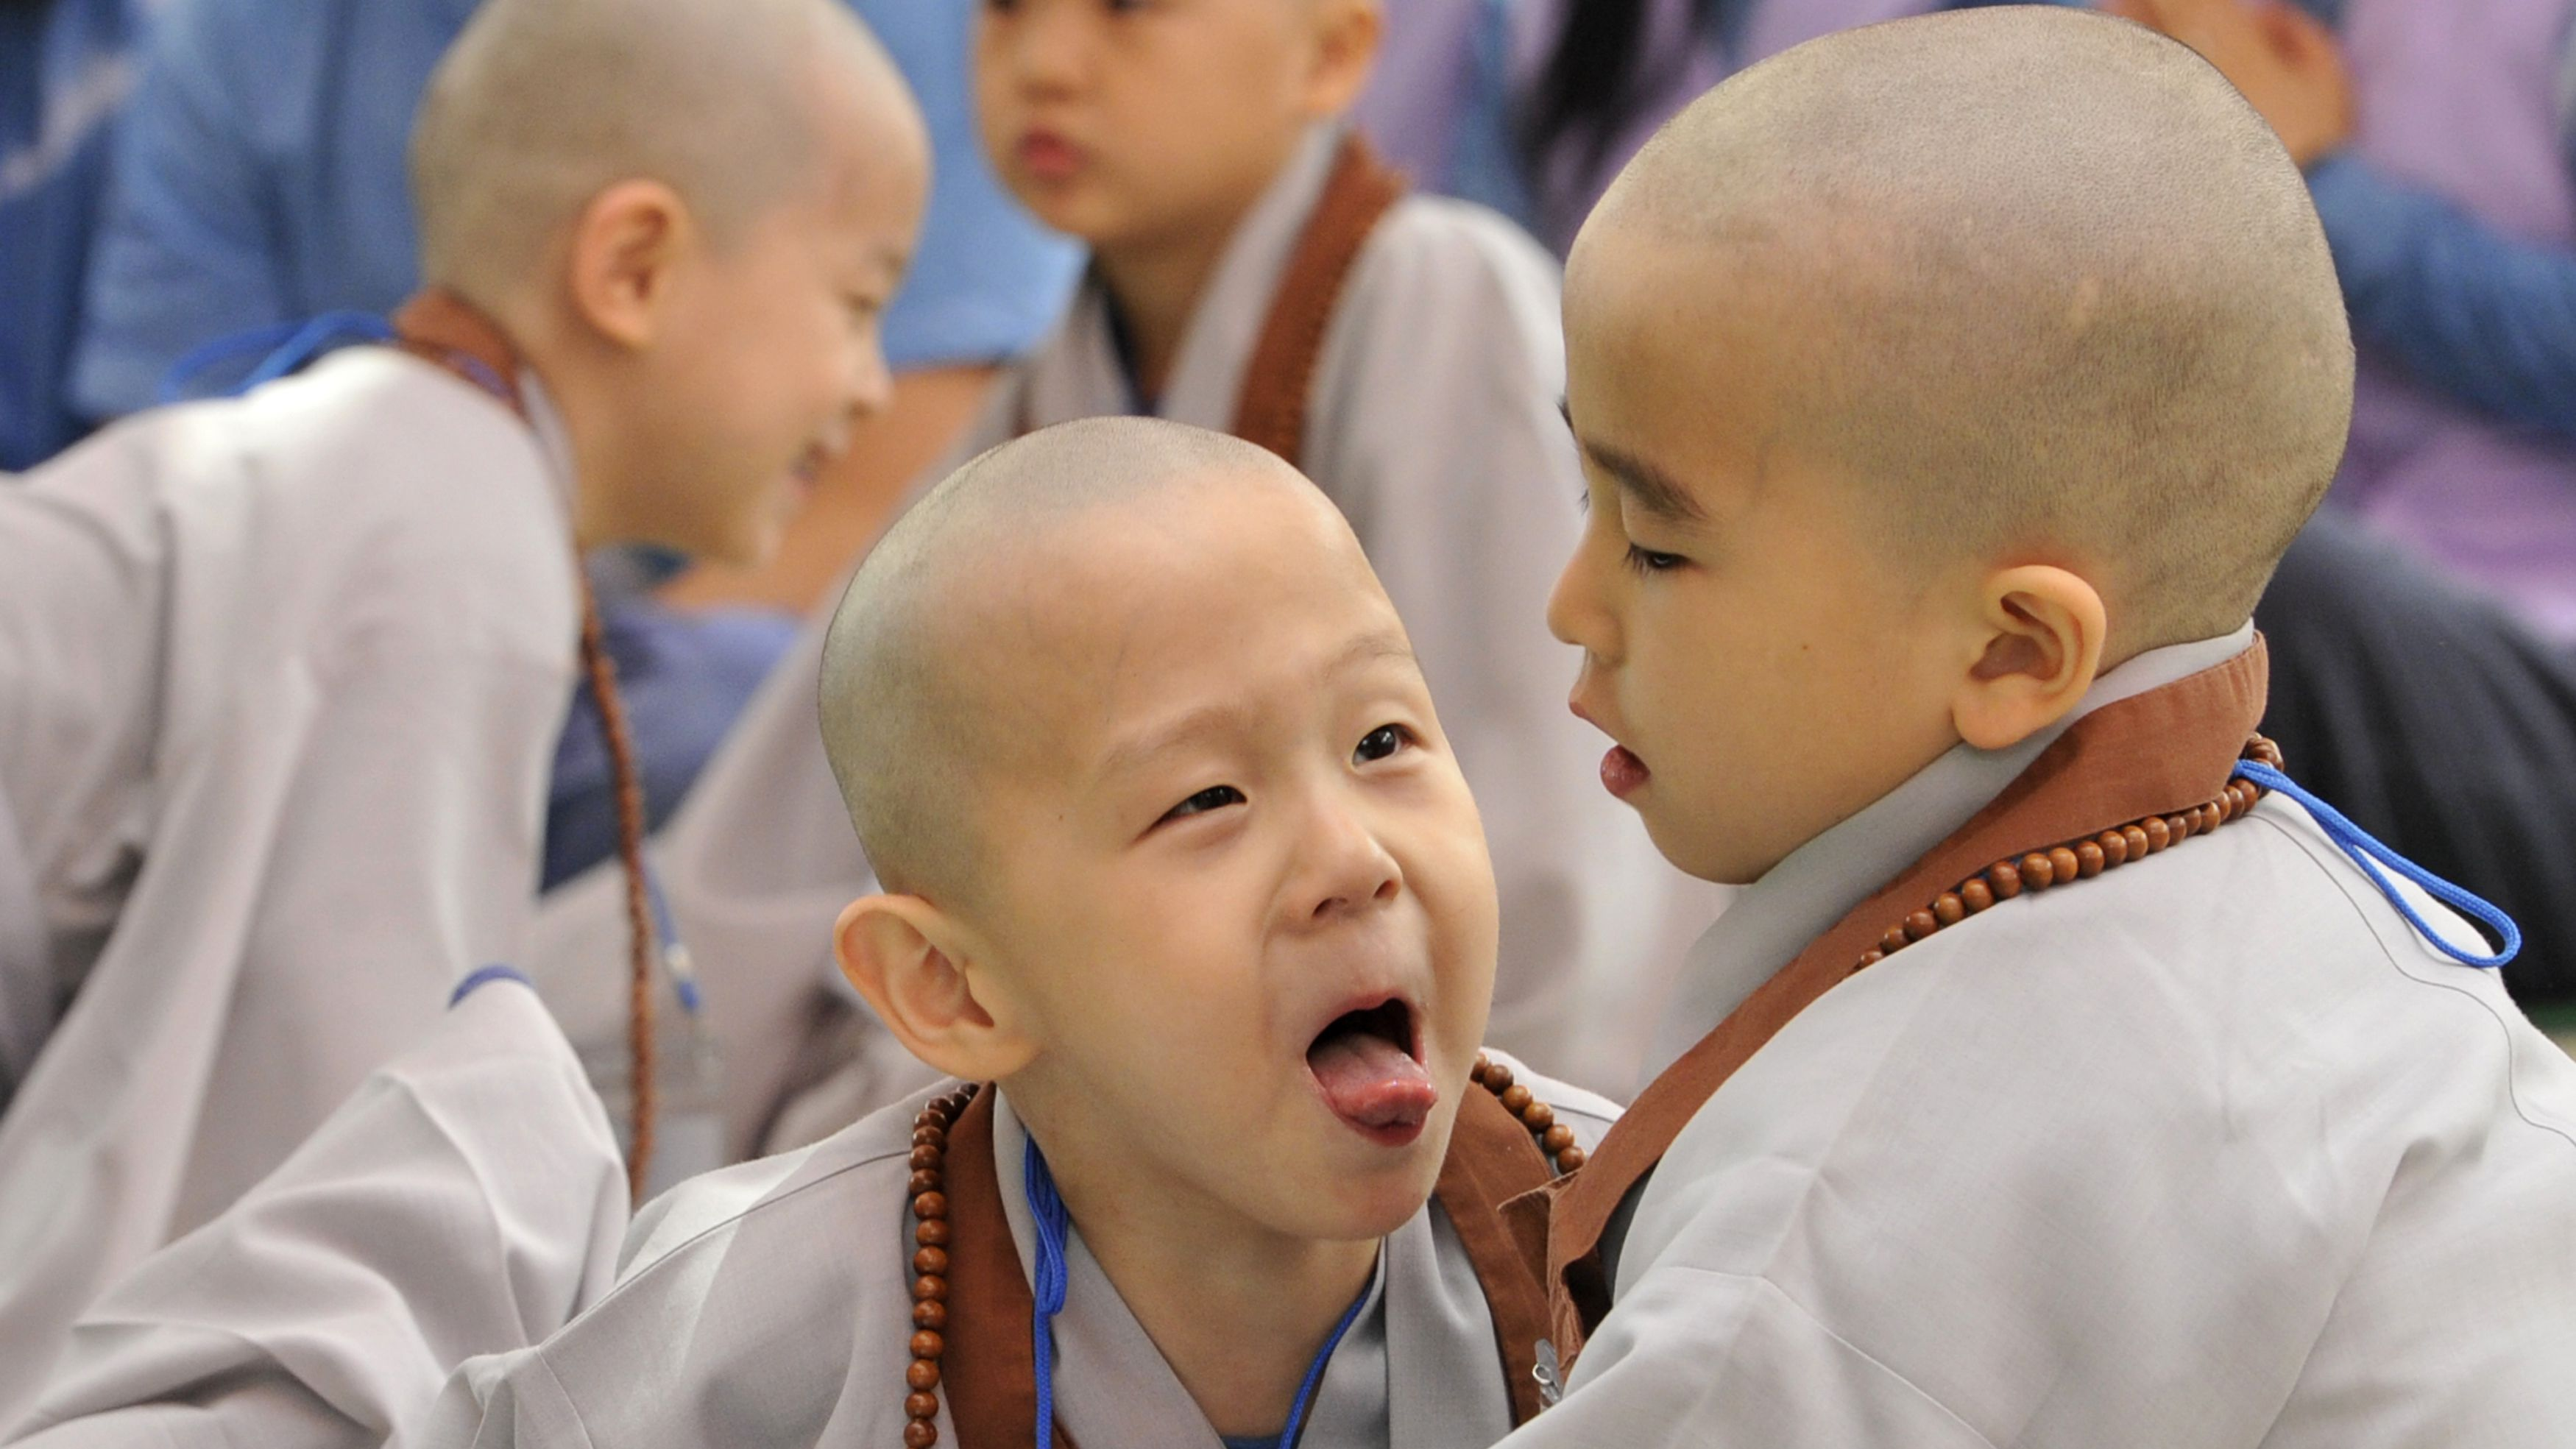 Monk child friends smiling